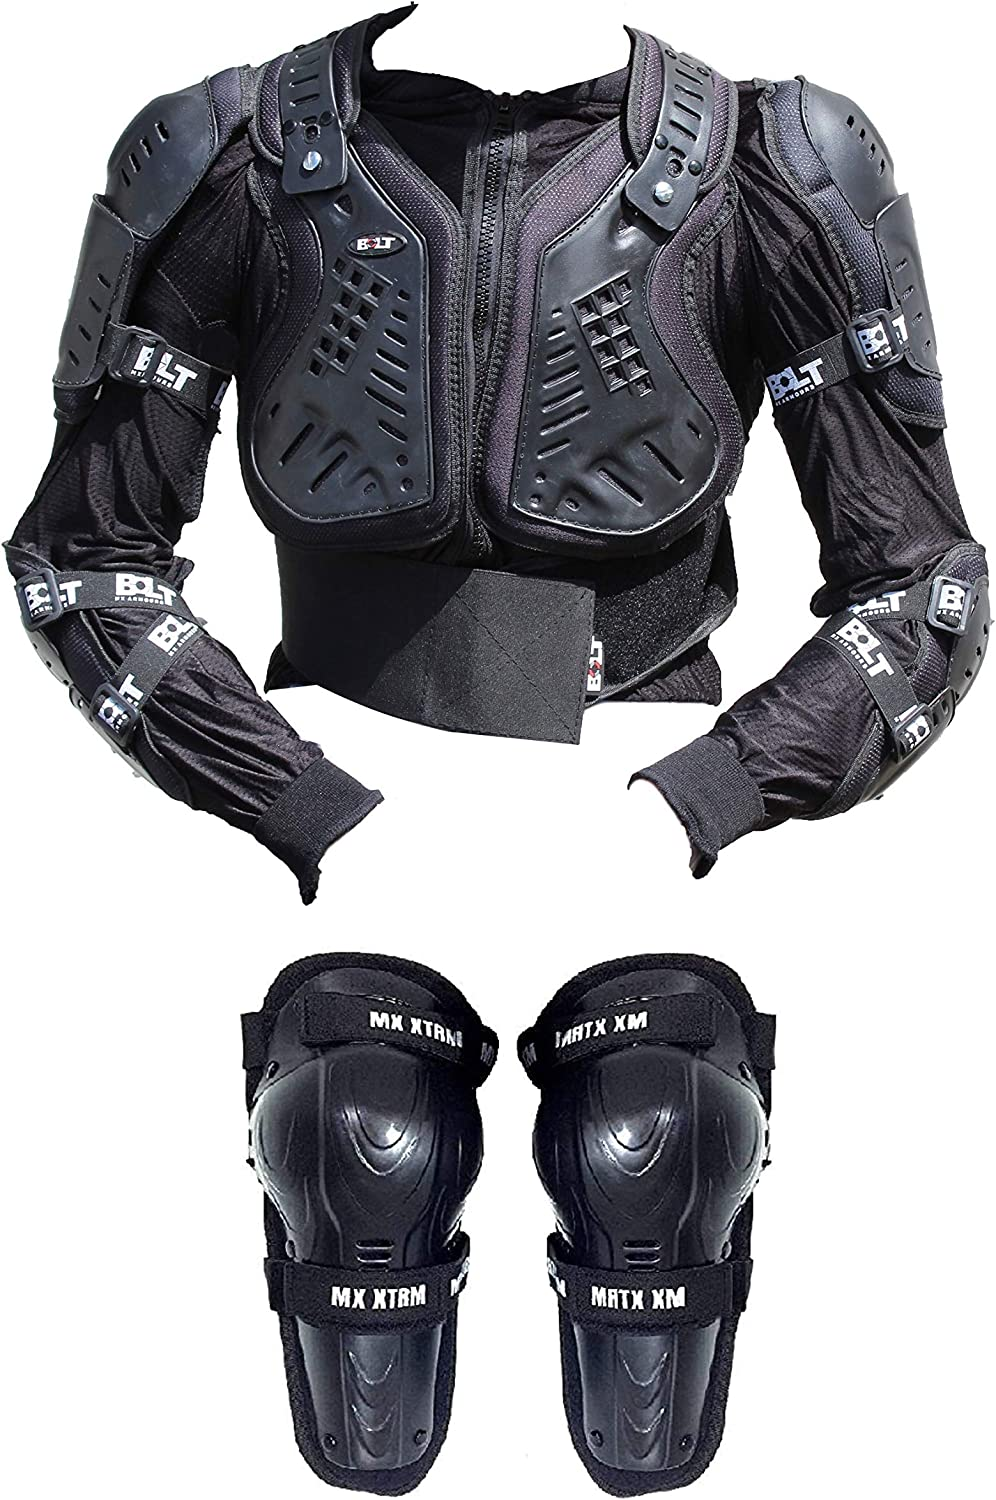 XTRM BOLT CORE 4 MX KIDS OFF ROAD DEFLECTOR Motorbike Quad ATV Sport CE Approved Children Body Armour Jacket BLACK /& KIDS MX HINGED KNEE